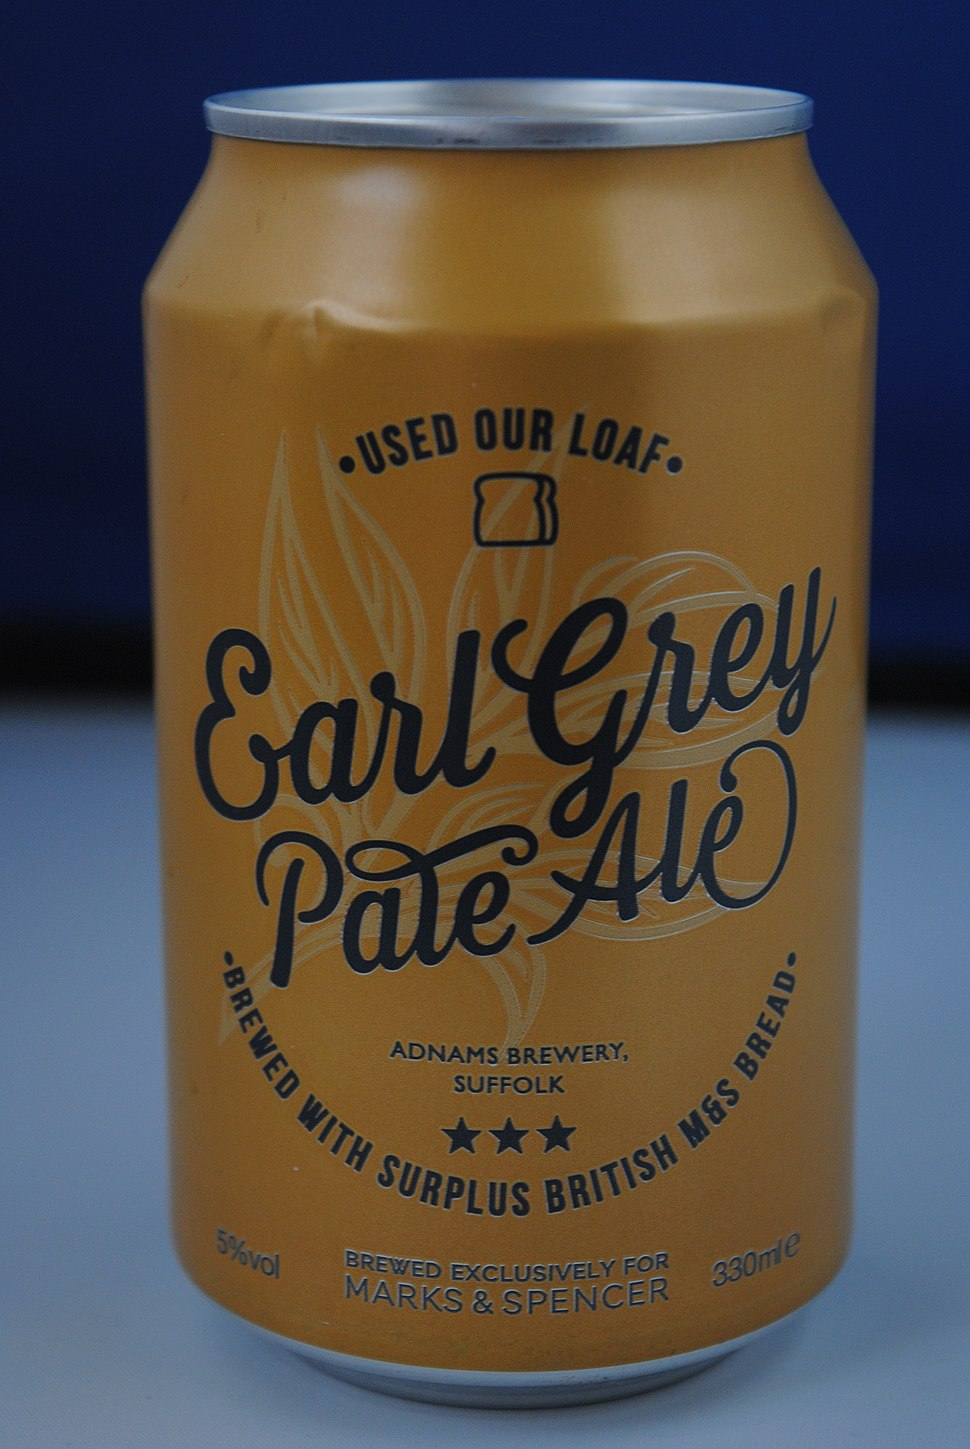 Earl Grey Pale Ale can - Andy Mabbett